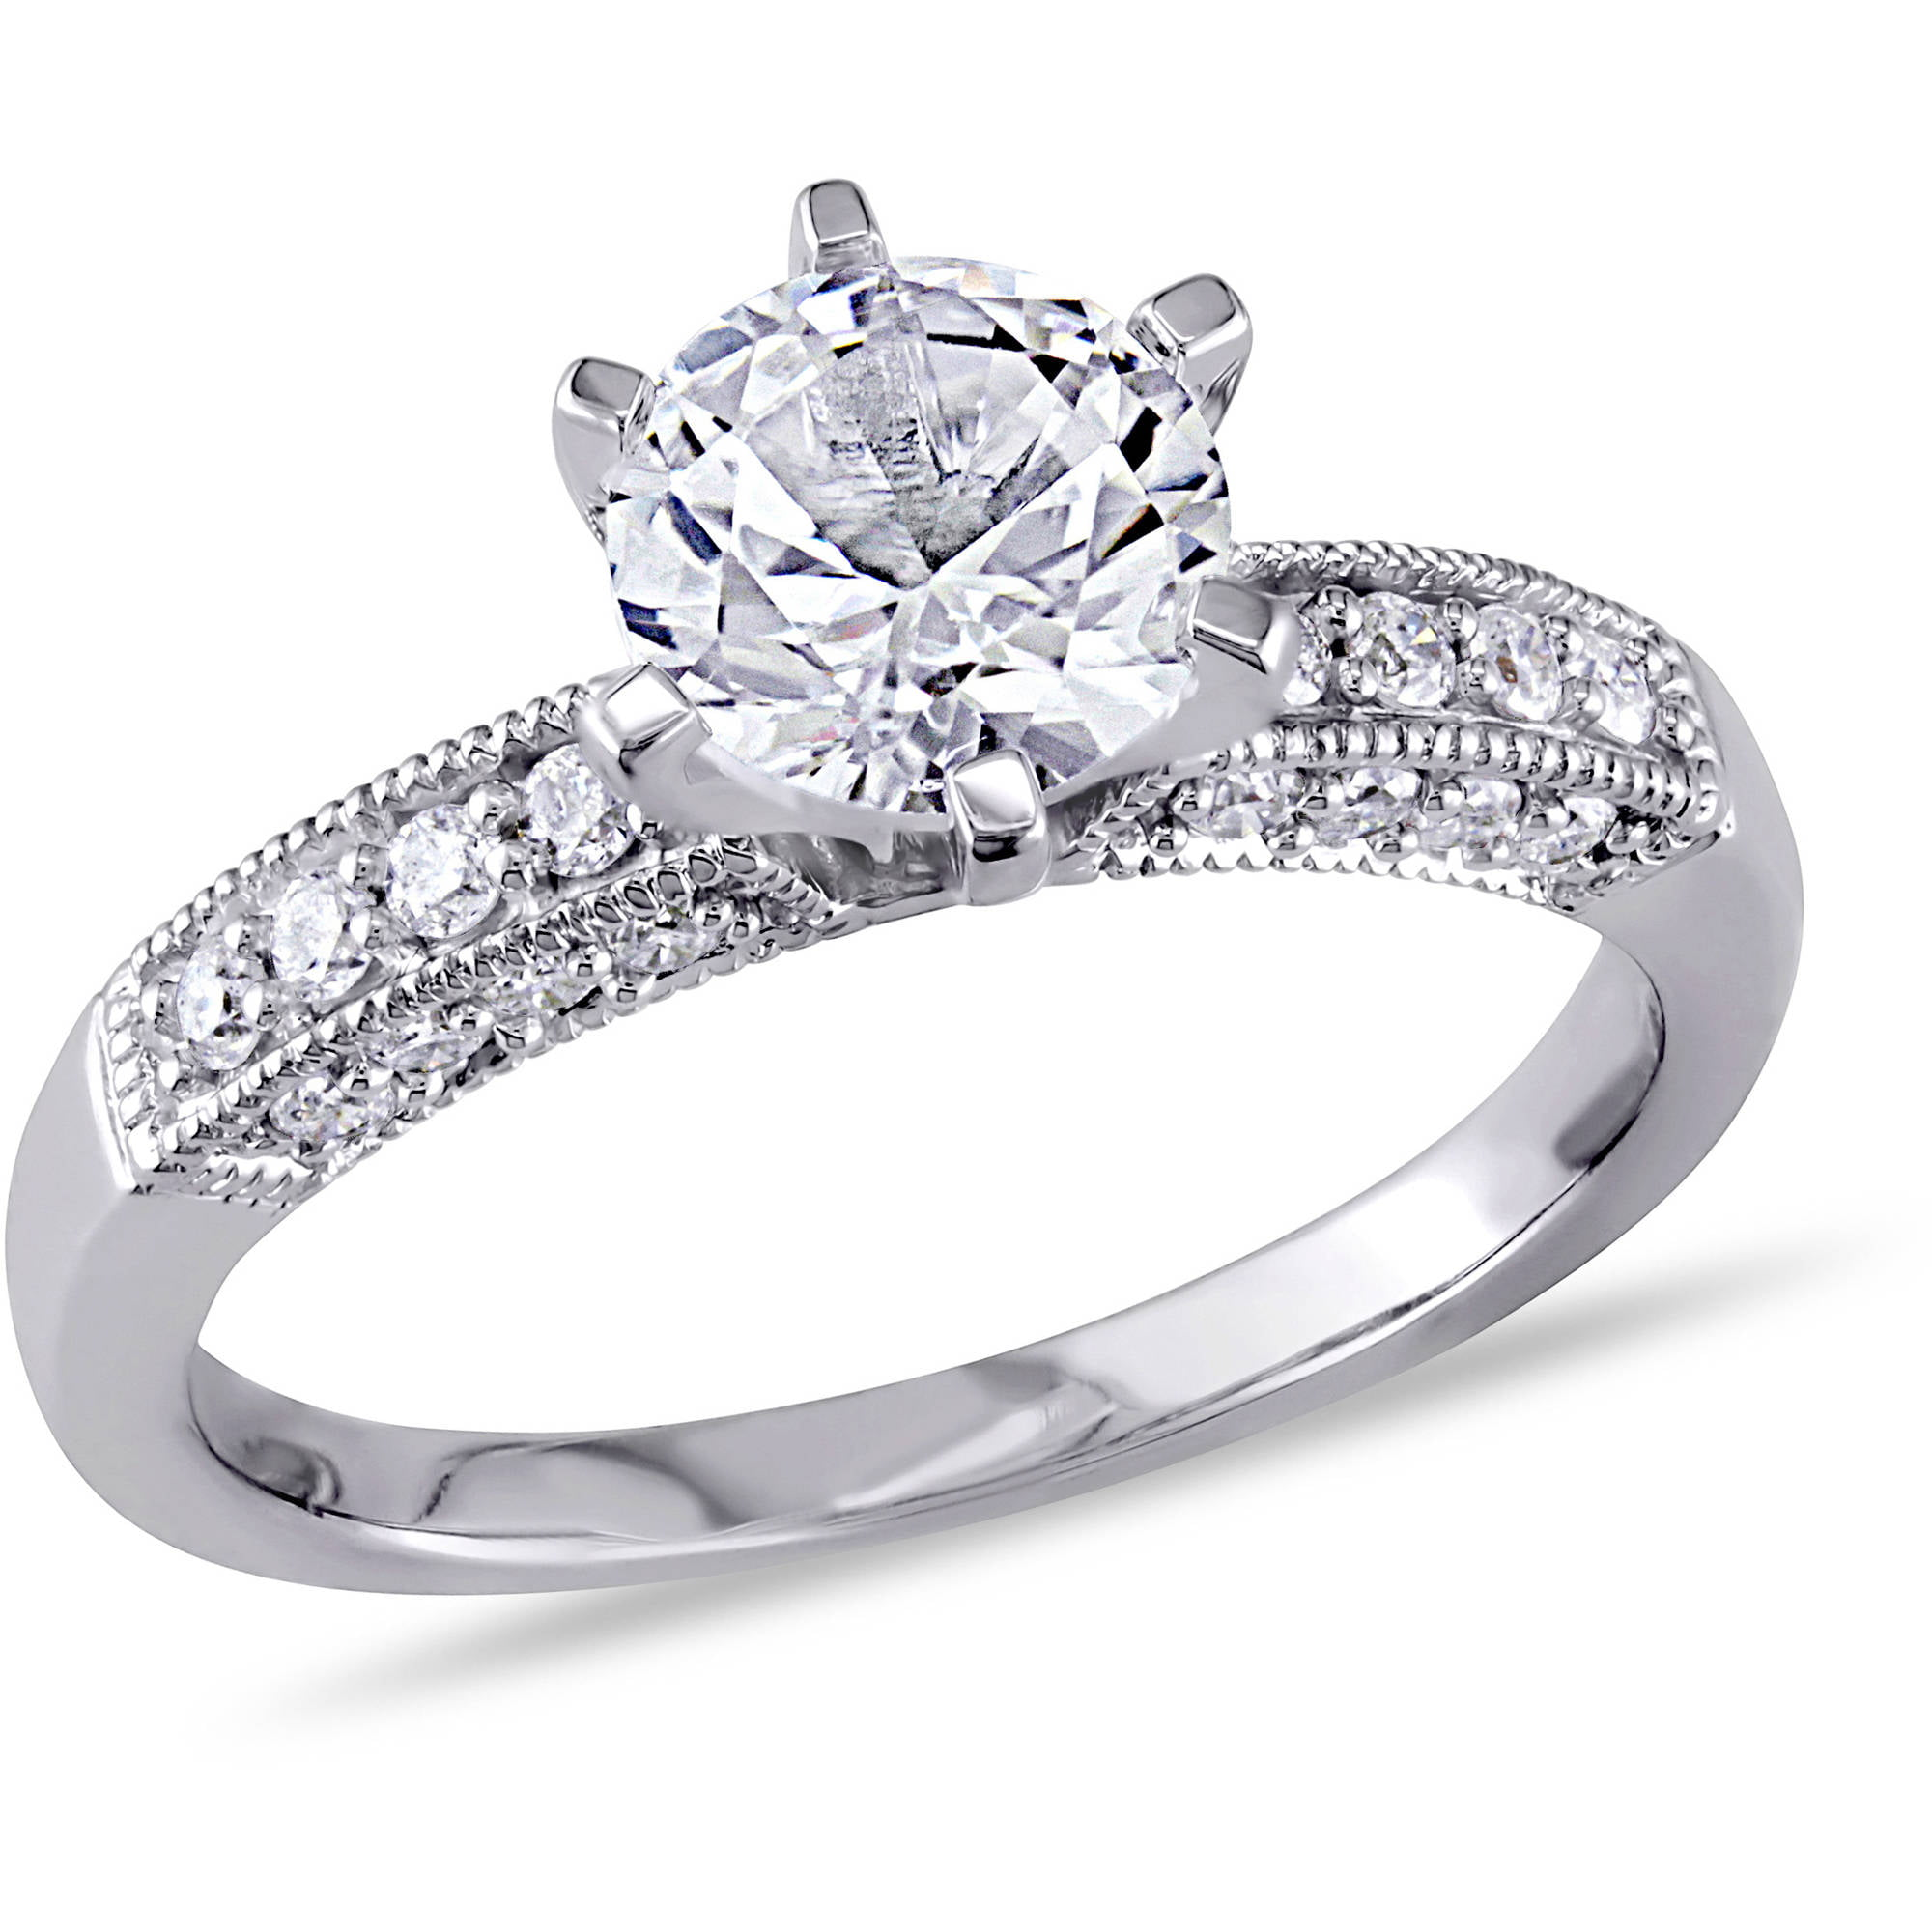 stone comments calling carat is justengaged here all pictures yvyxiwa r size wedding rings ring a